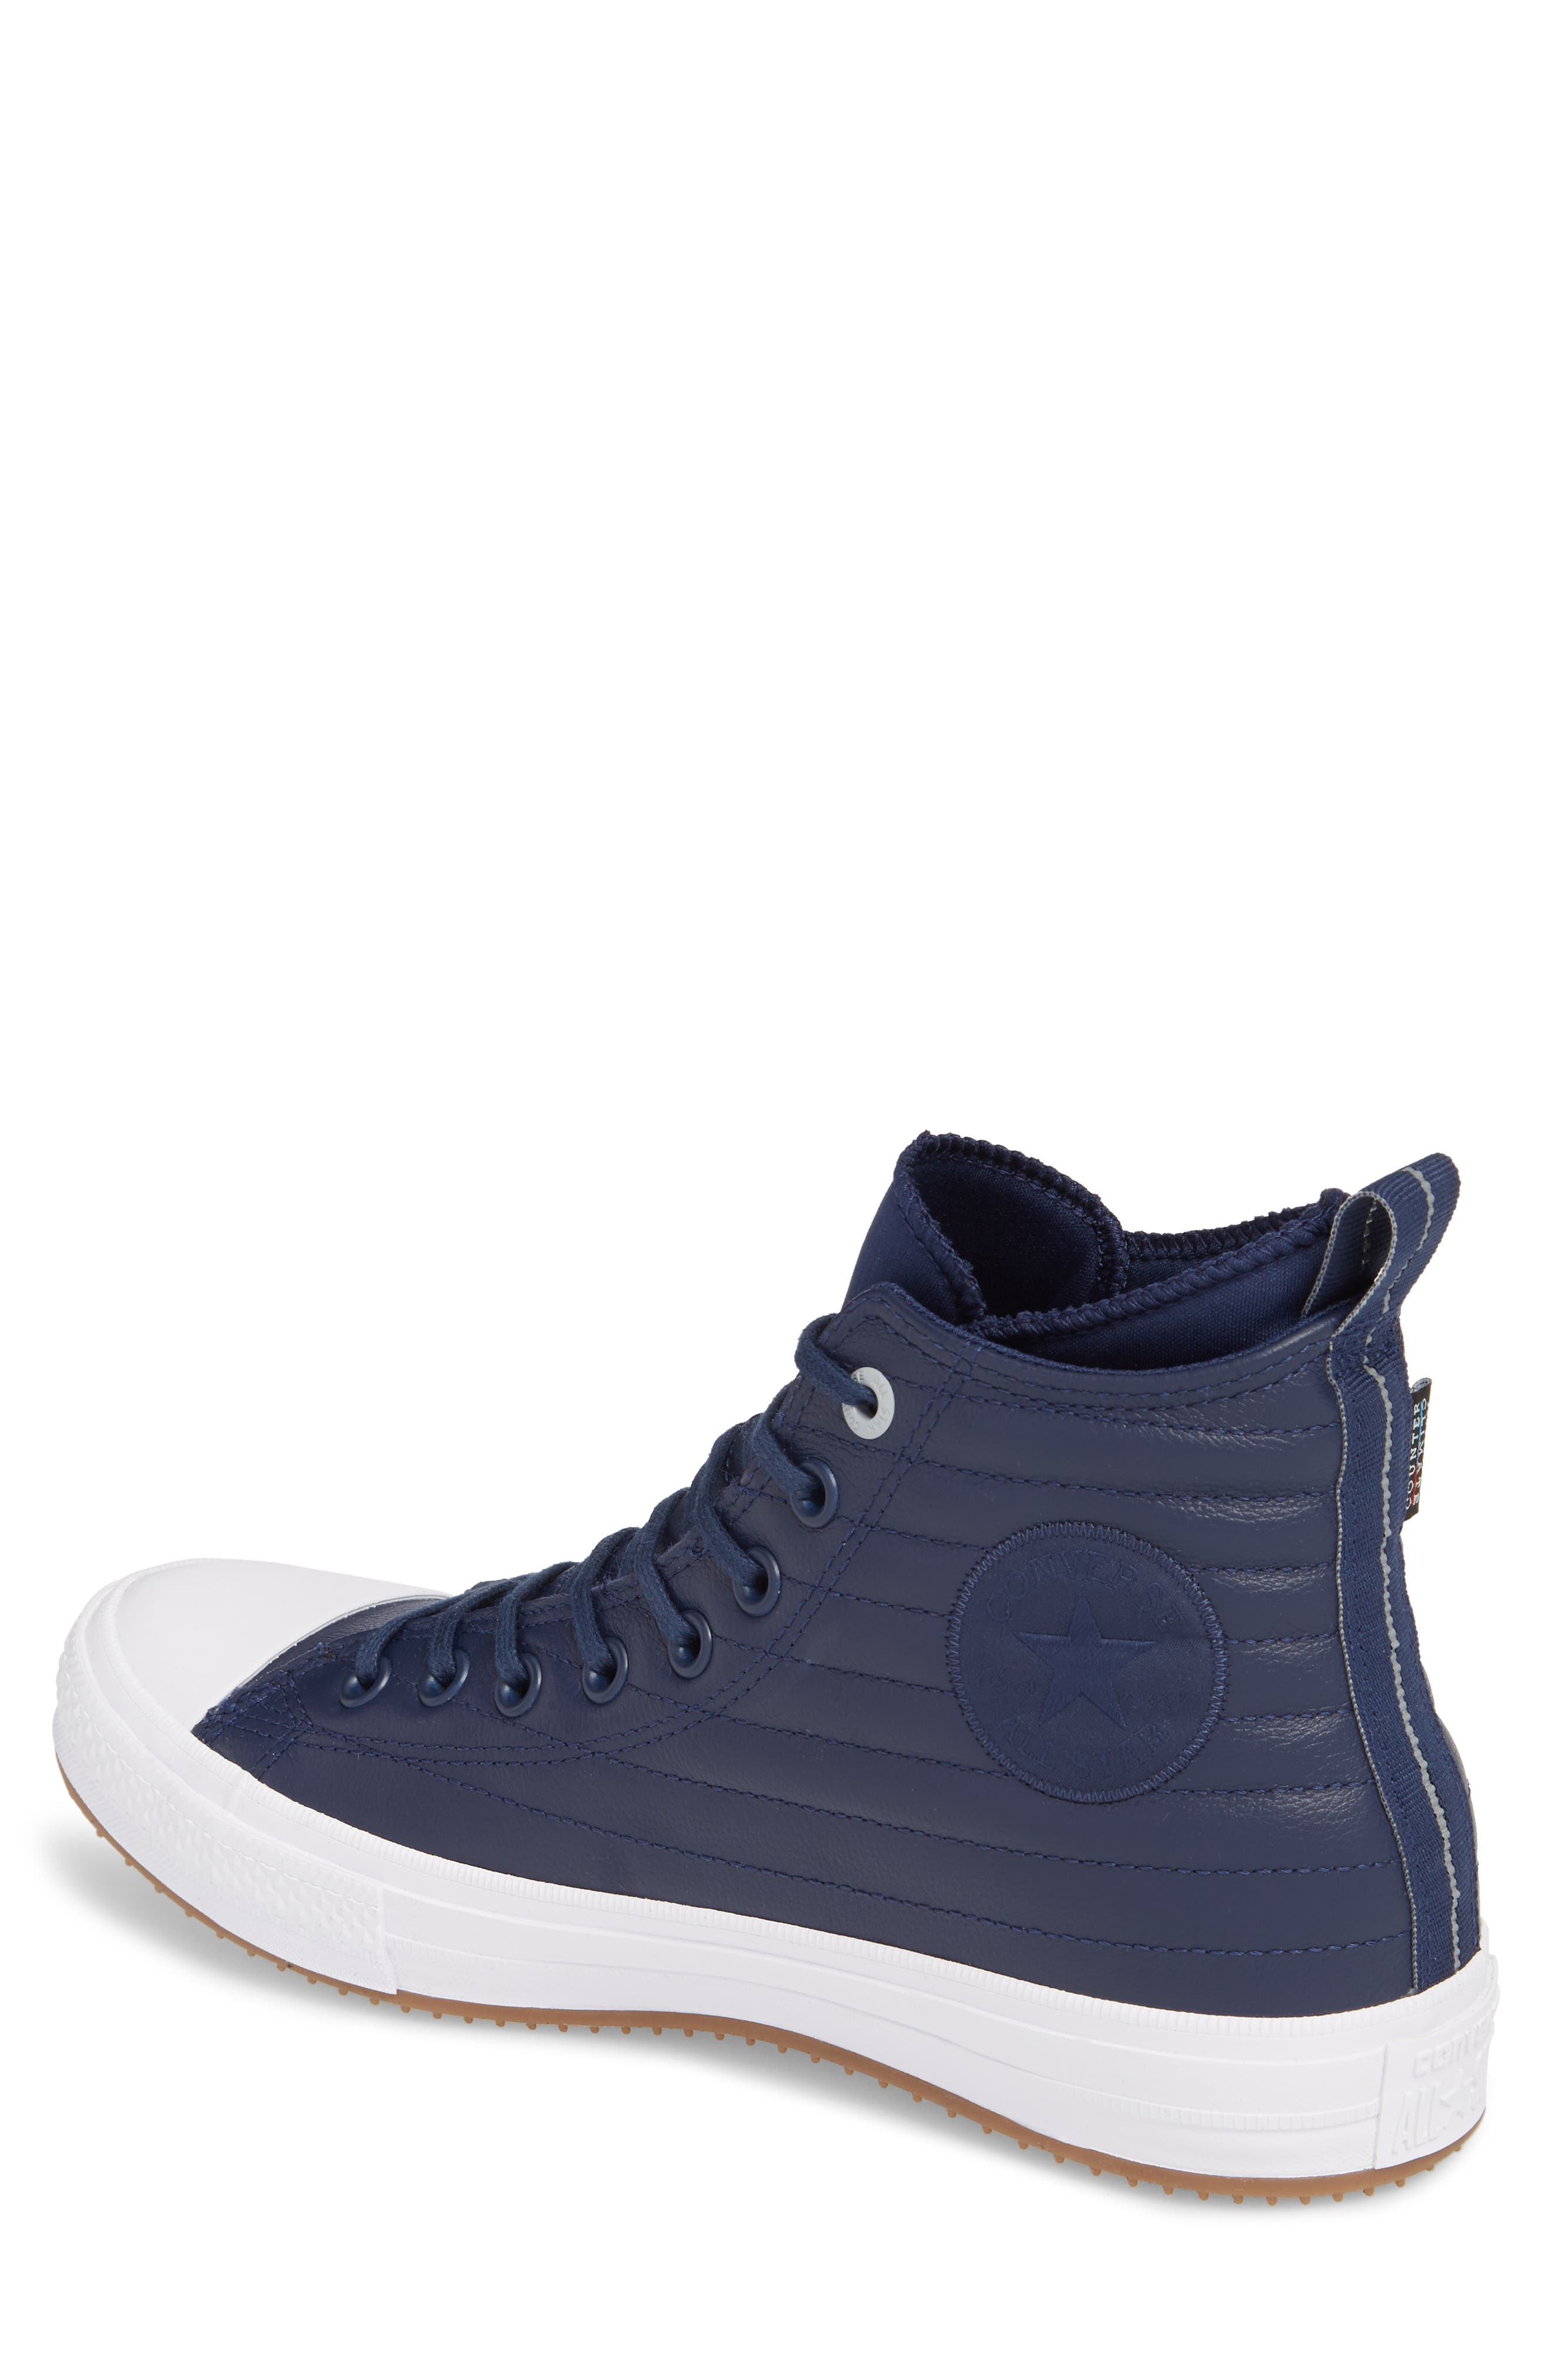 Chuck Taylor<sup>®</sup> All Star<sup>®</sup> Waterproof Quilted Sneaker,                             Alternate thumbnail 4, color,